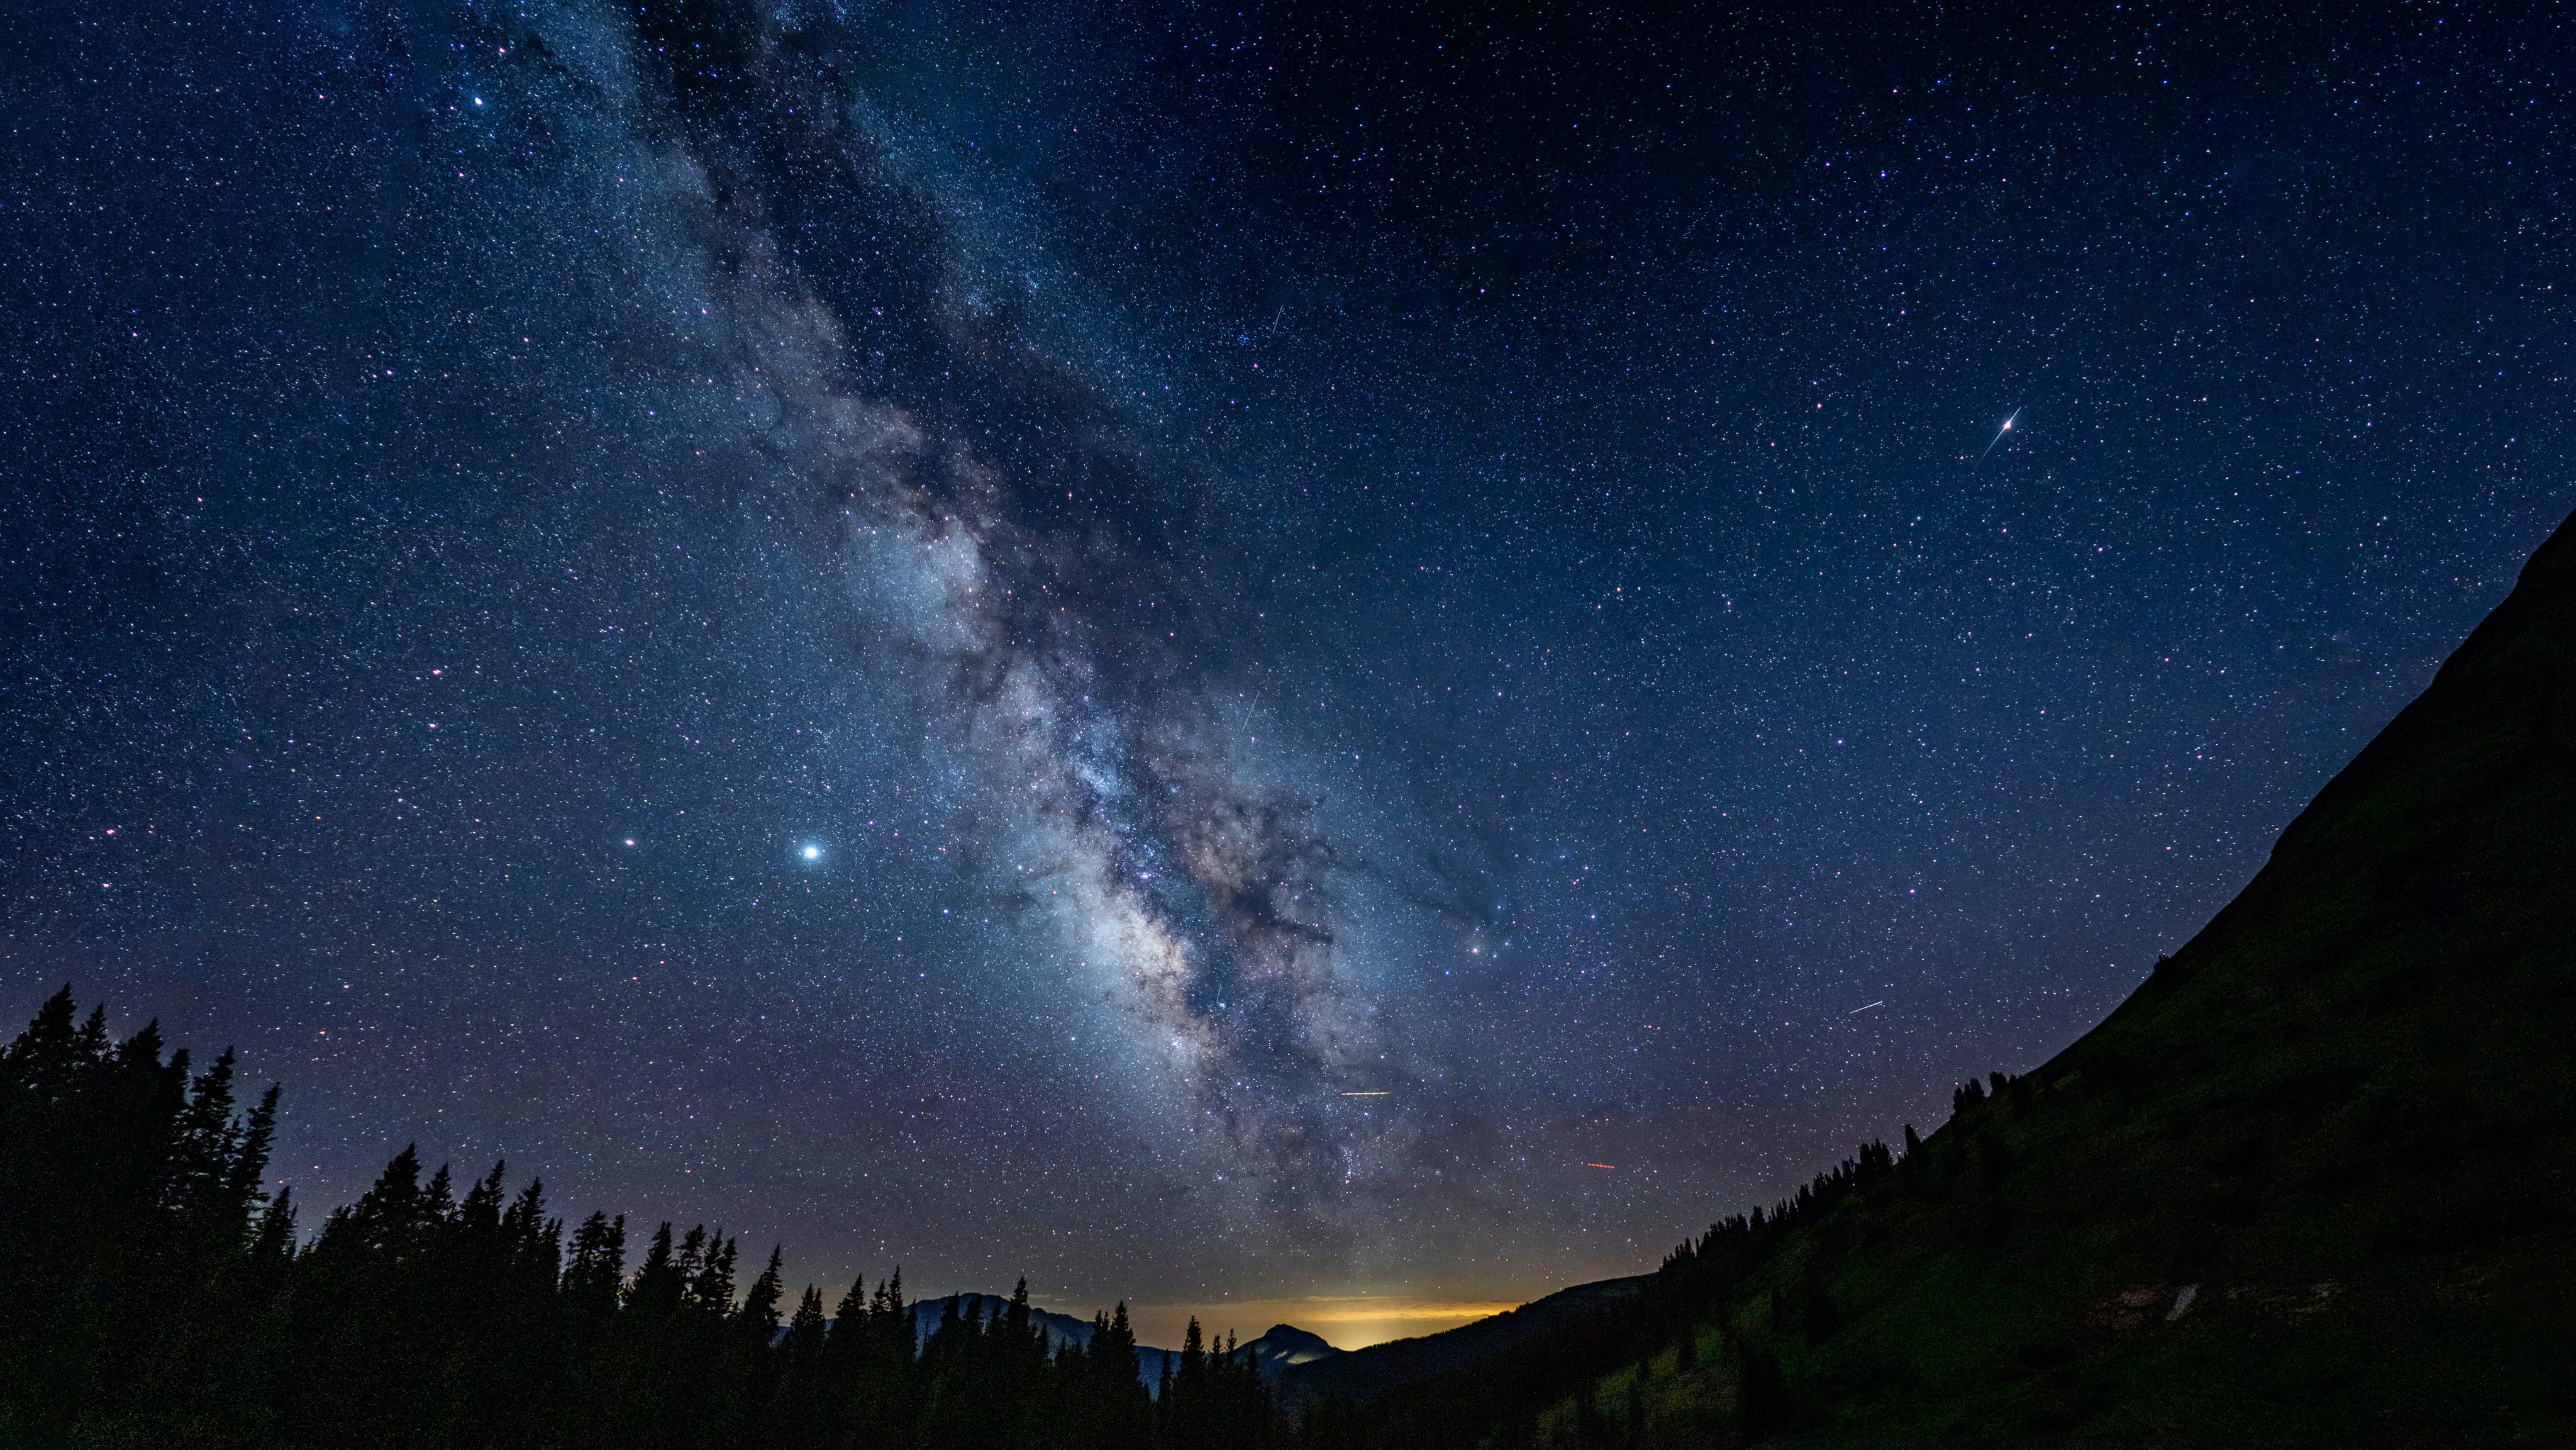 77444 download wallpaper Starry Sky, Landscape, Mountains, Night, Dark, Milky Way screensavers and pictures for free